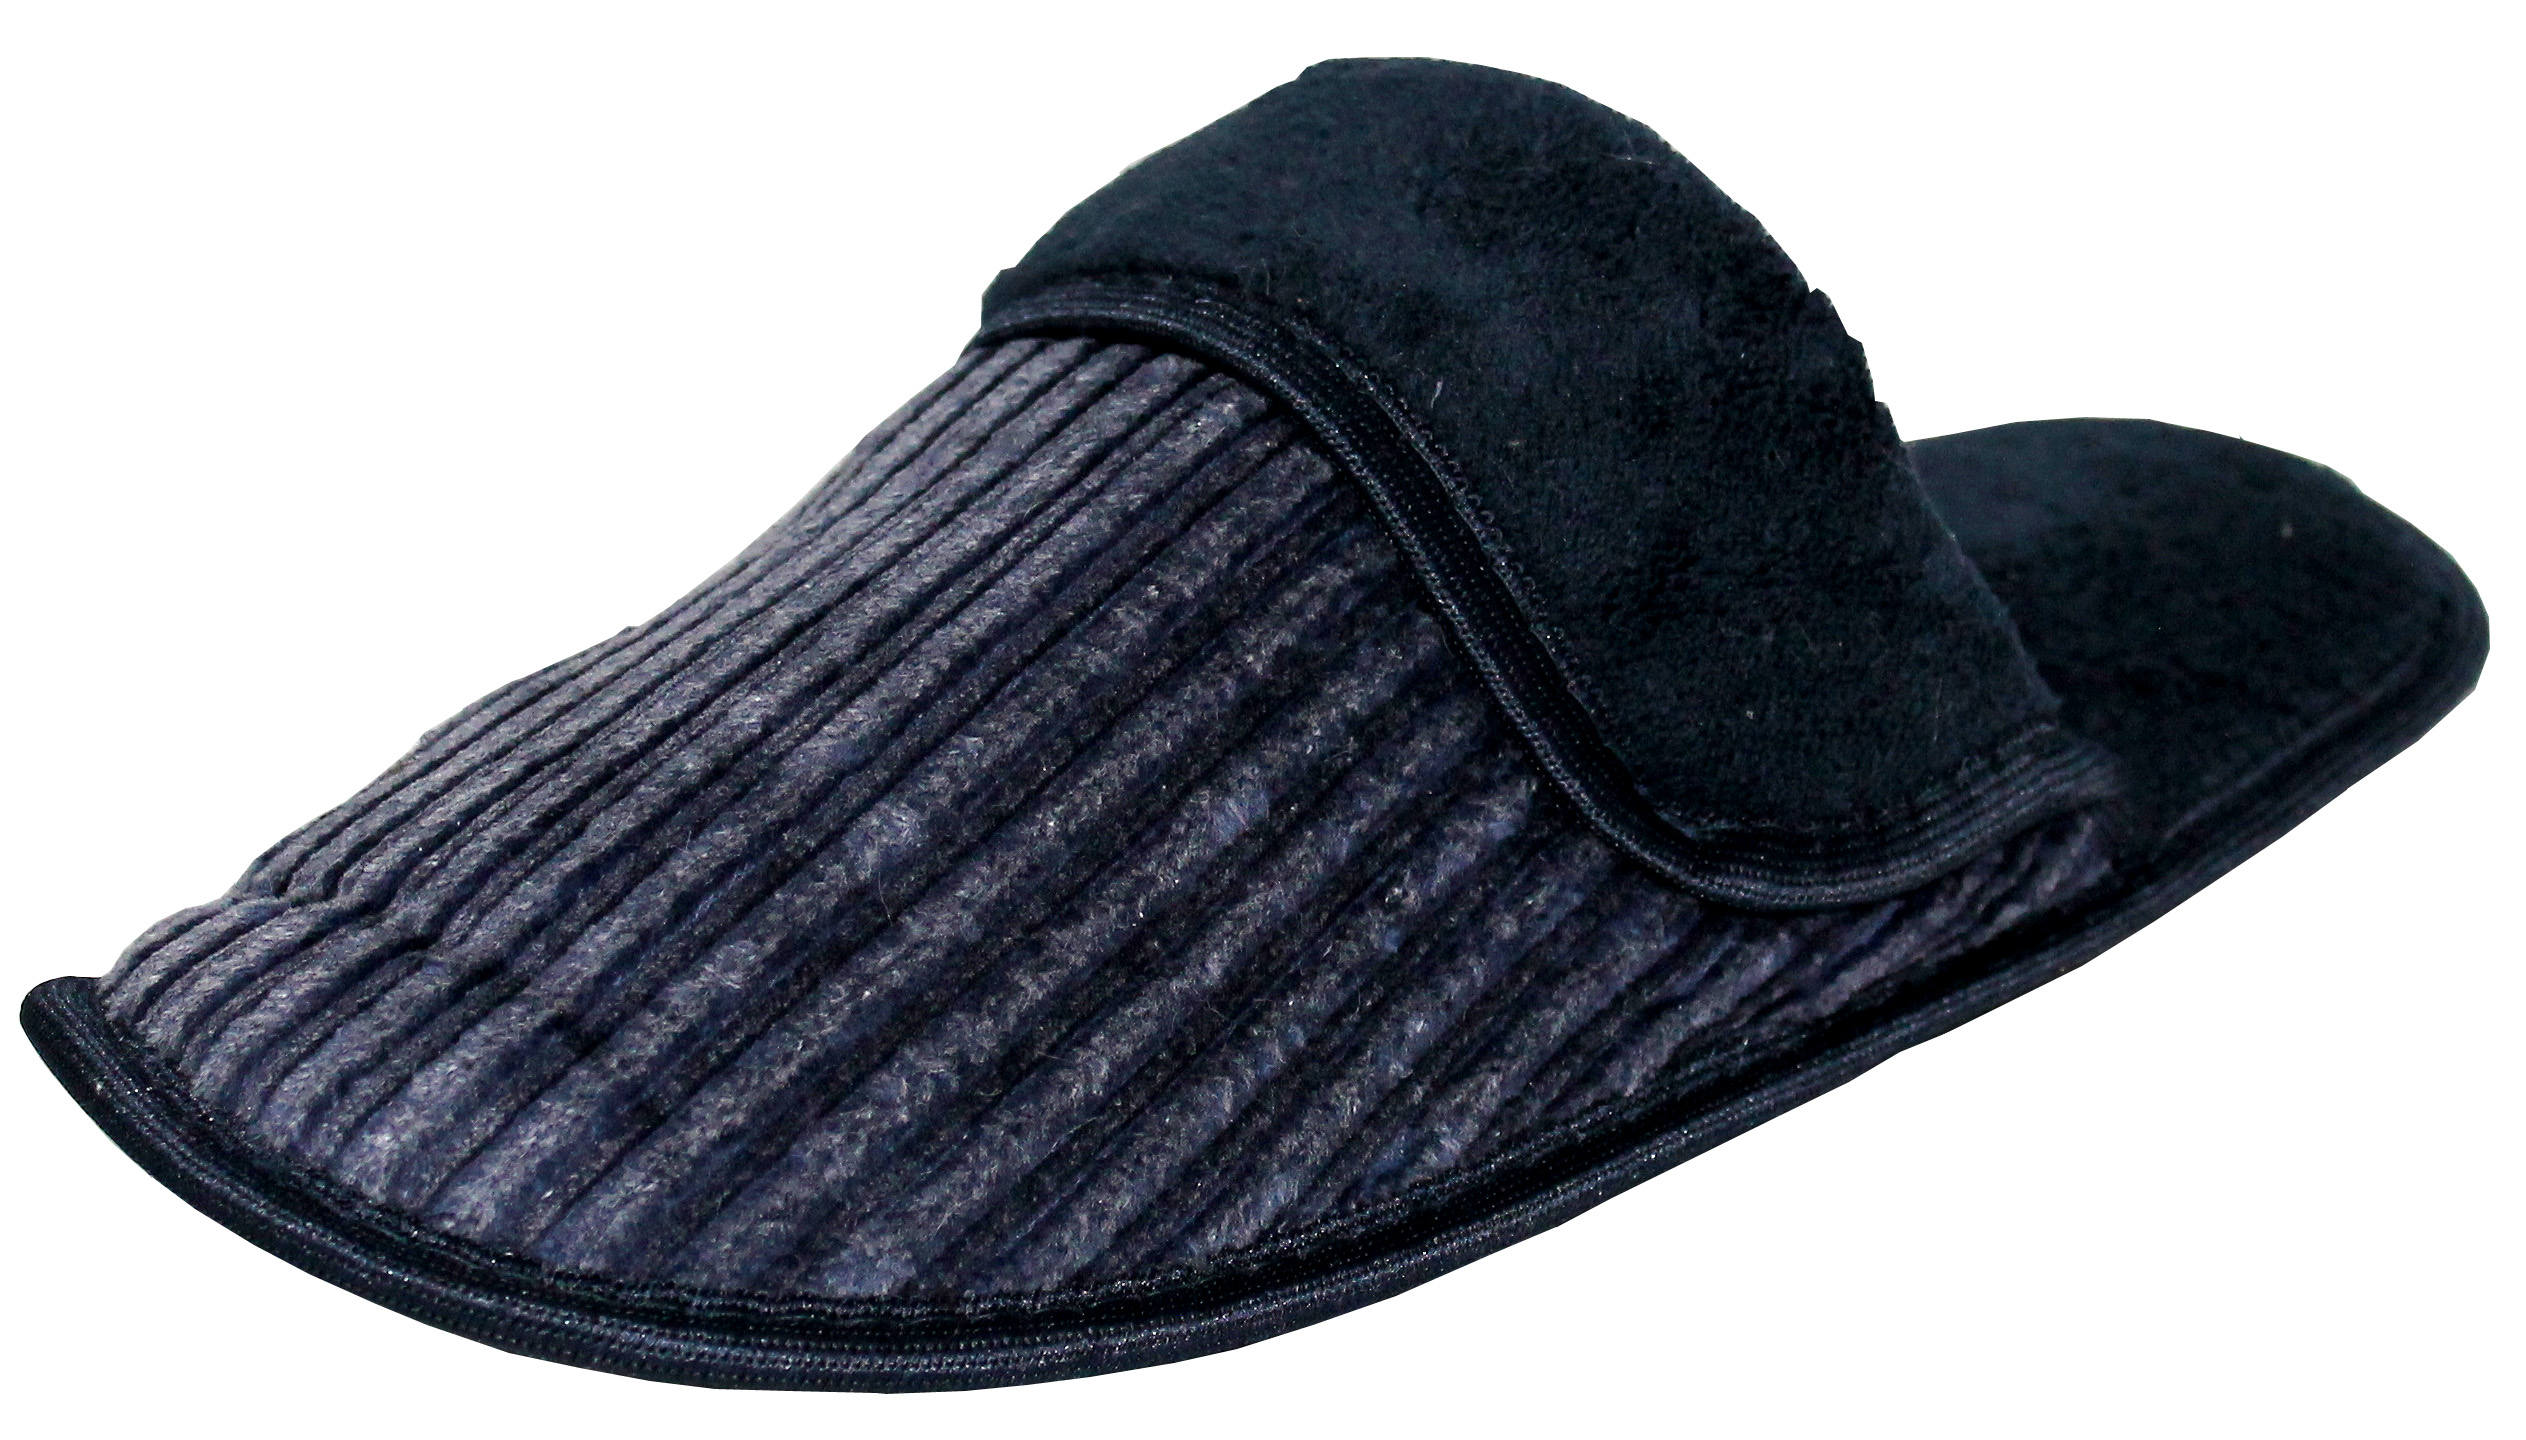 men's corduroy slip-on backless house slippers w/ slight padded